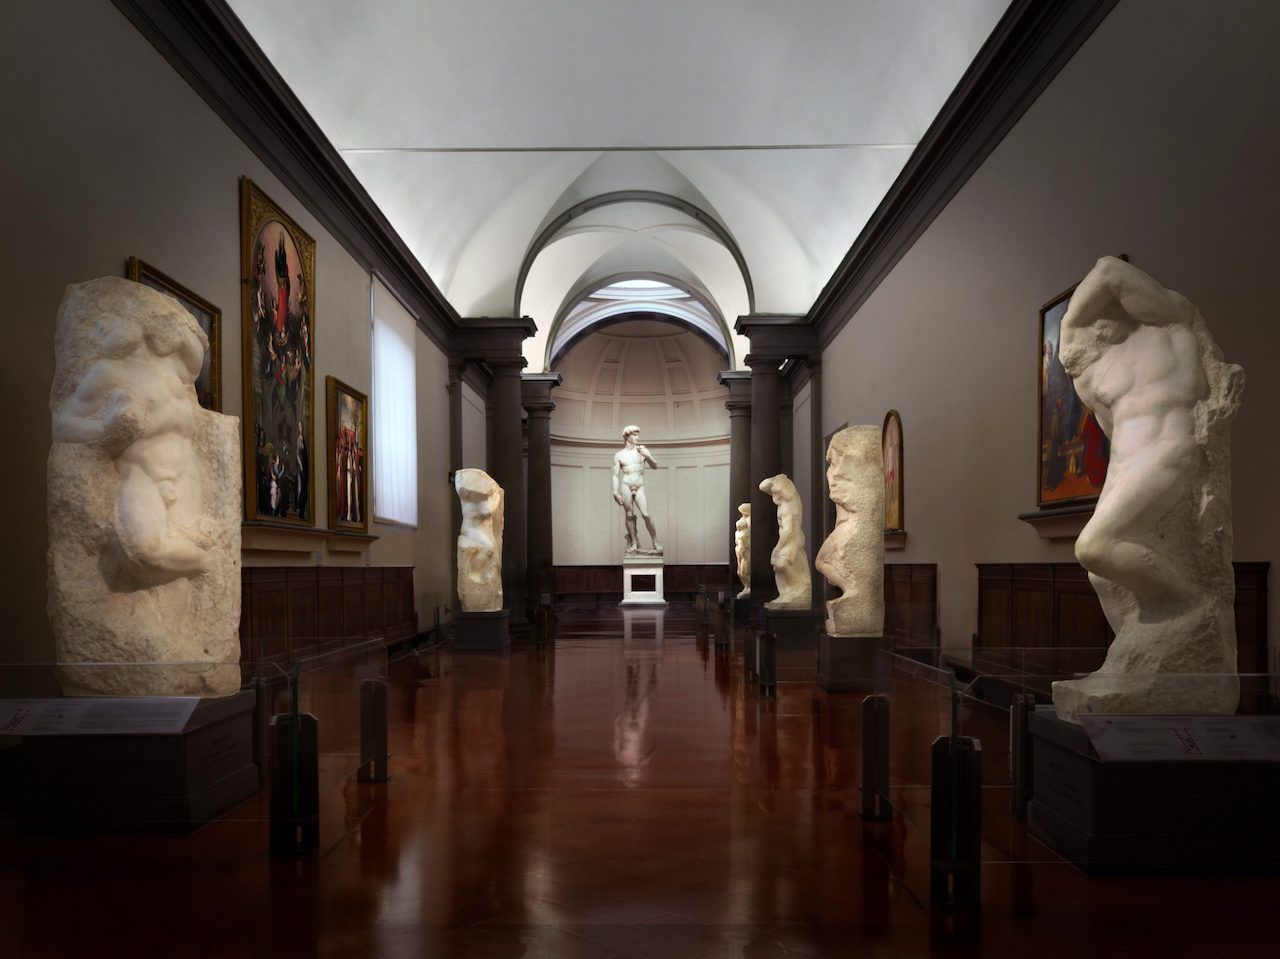 Statue of David currently on display in Florence